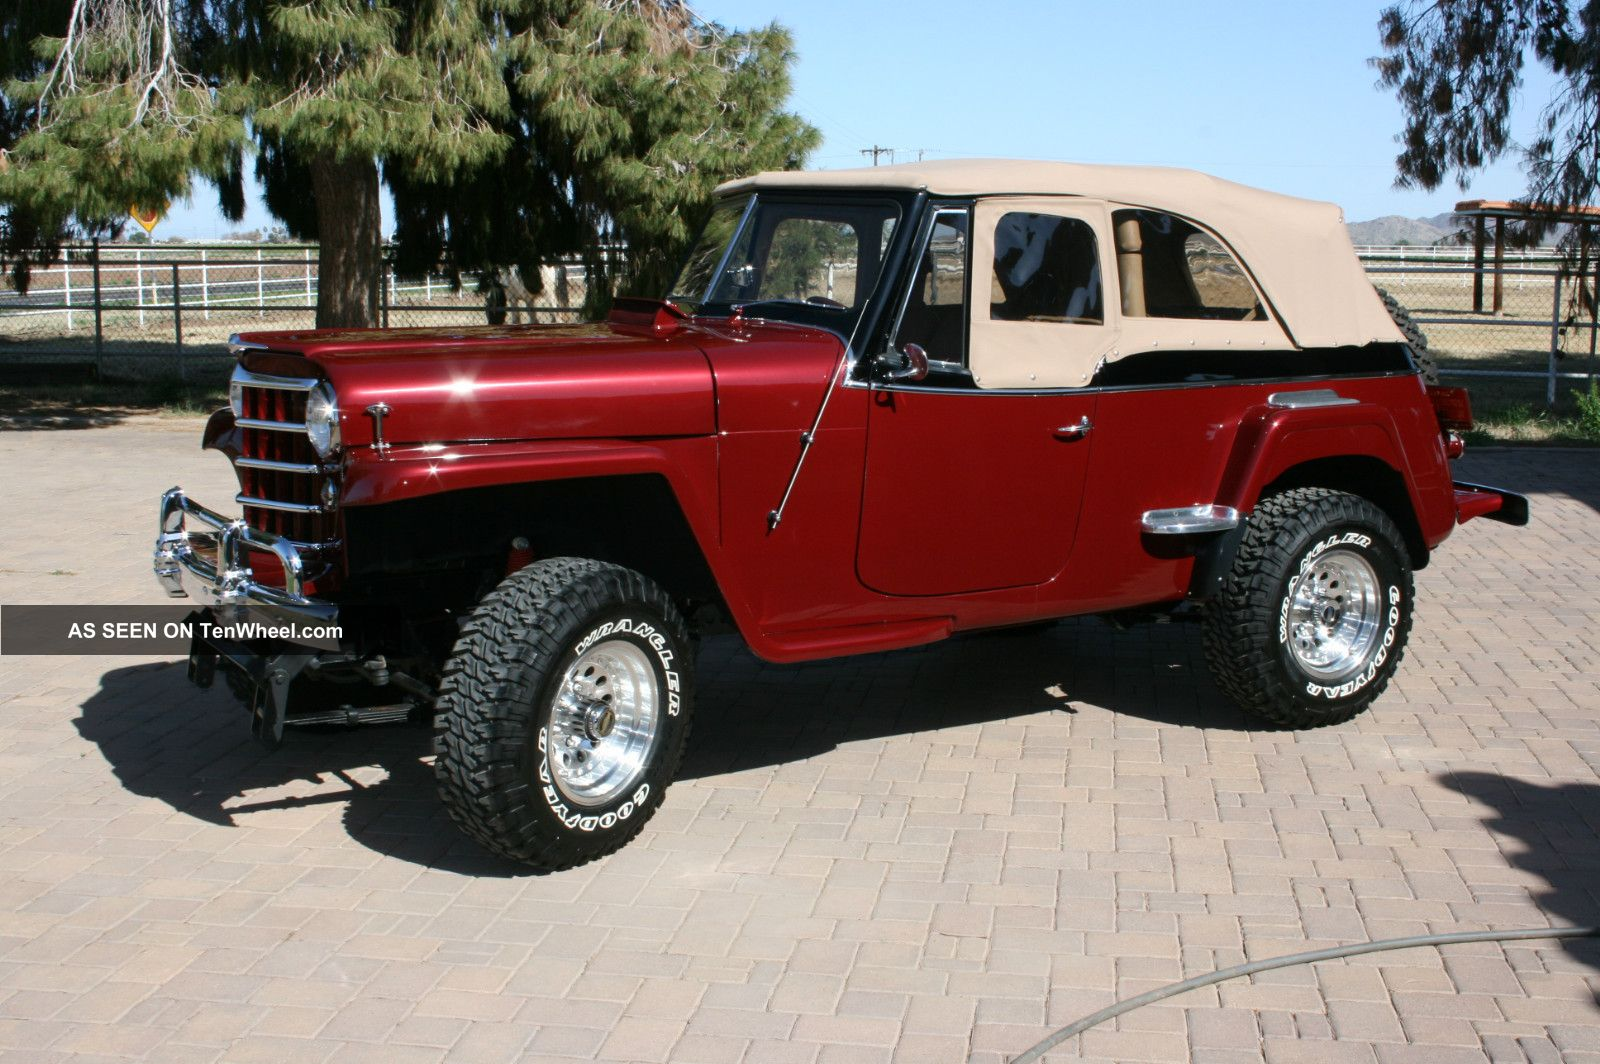 Willys Jeepster #11